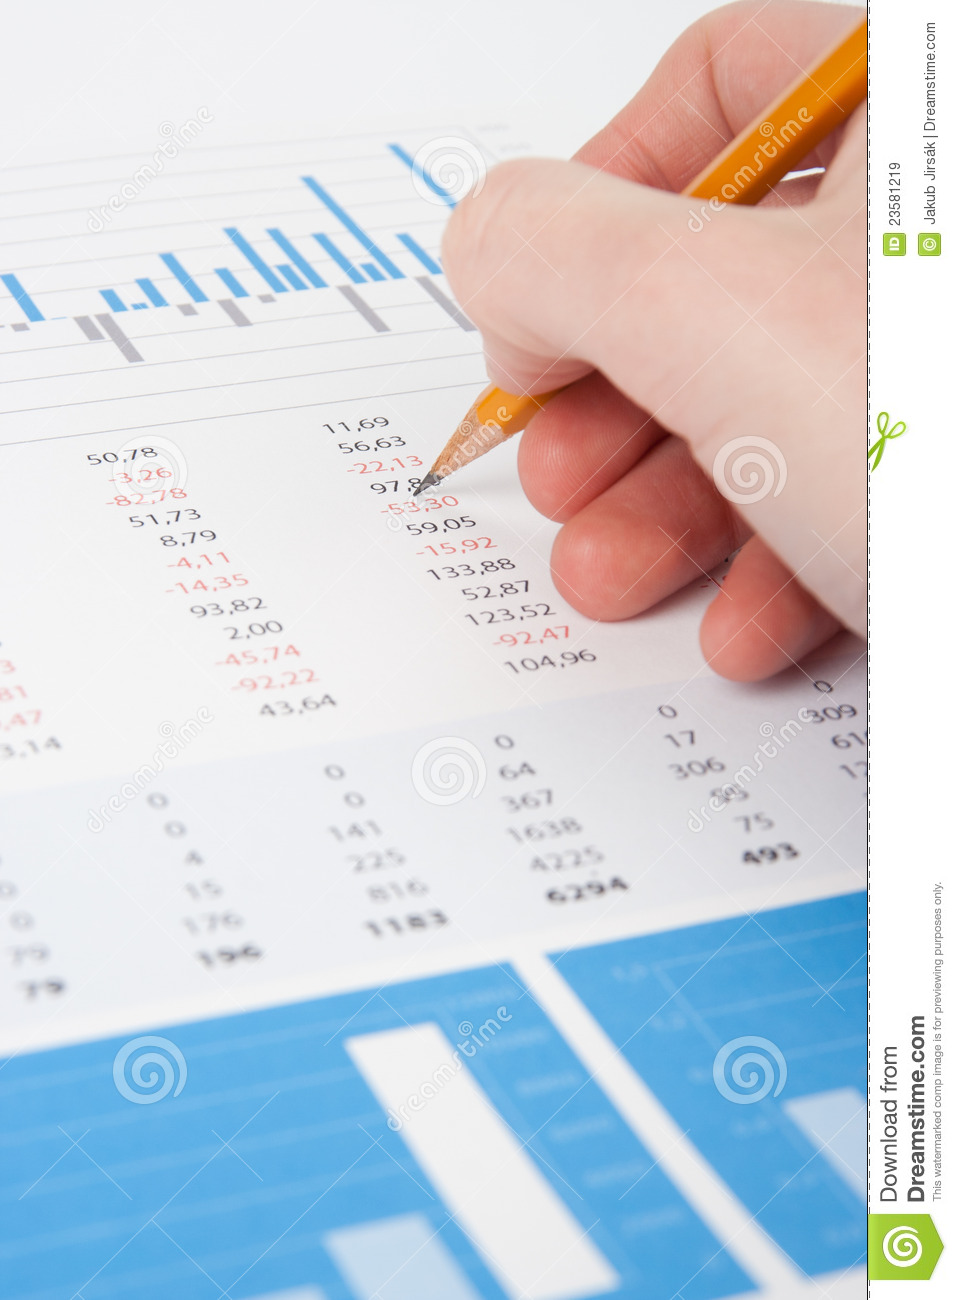 Concept of business analyst - hand with pencil, chart and graphs.: dreamstime.com/royalty-free-stock-images-business-analysis...